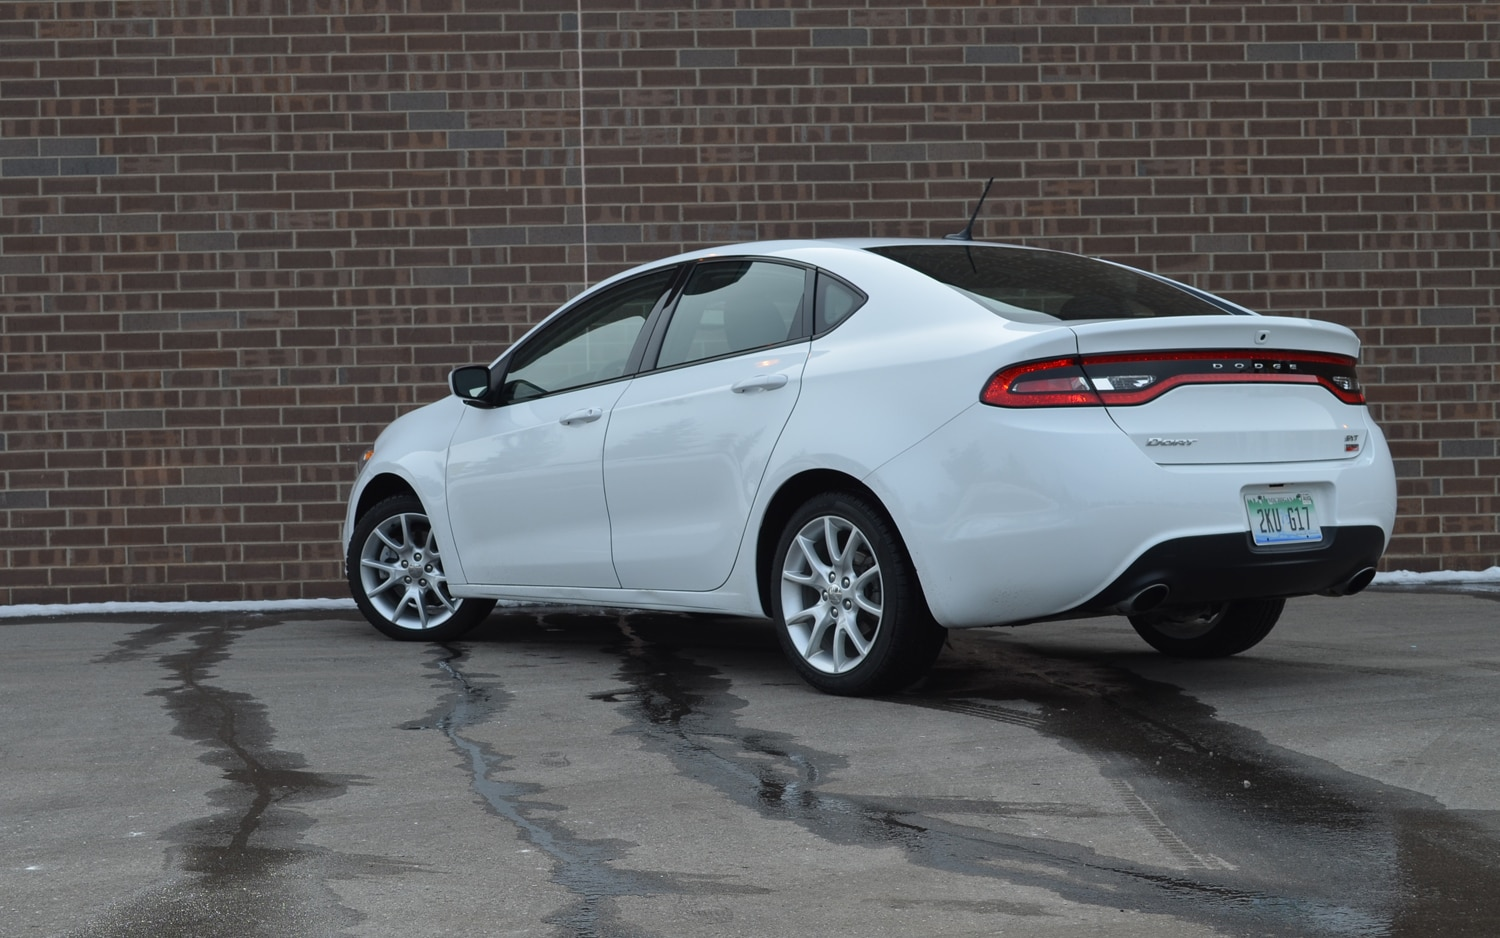 Dodge Dart Sxt Rear Left View Jpg on Ford Charger 2013